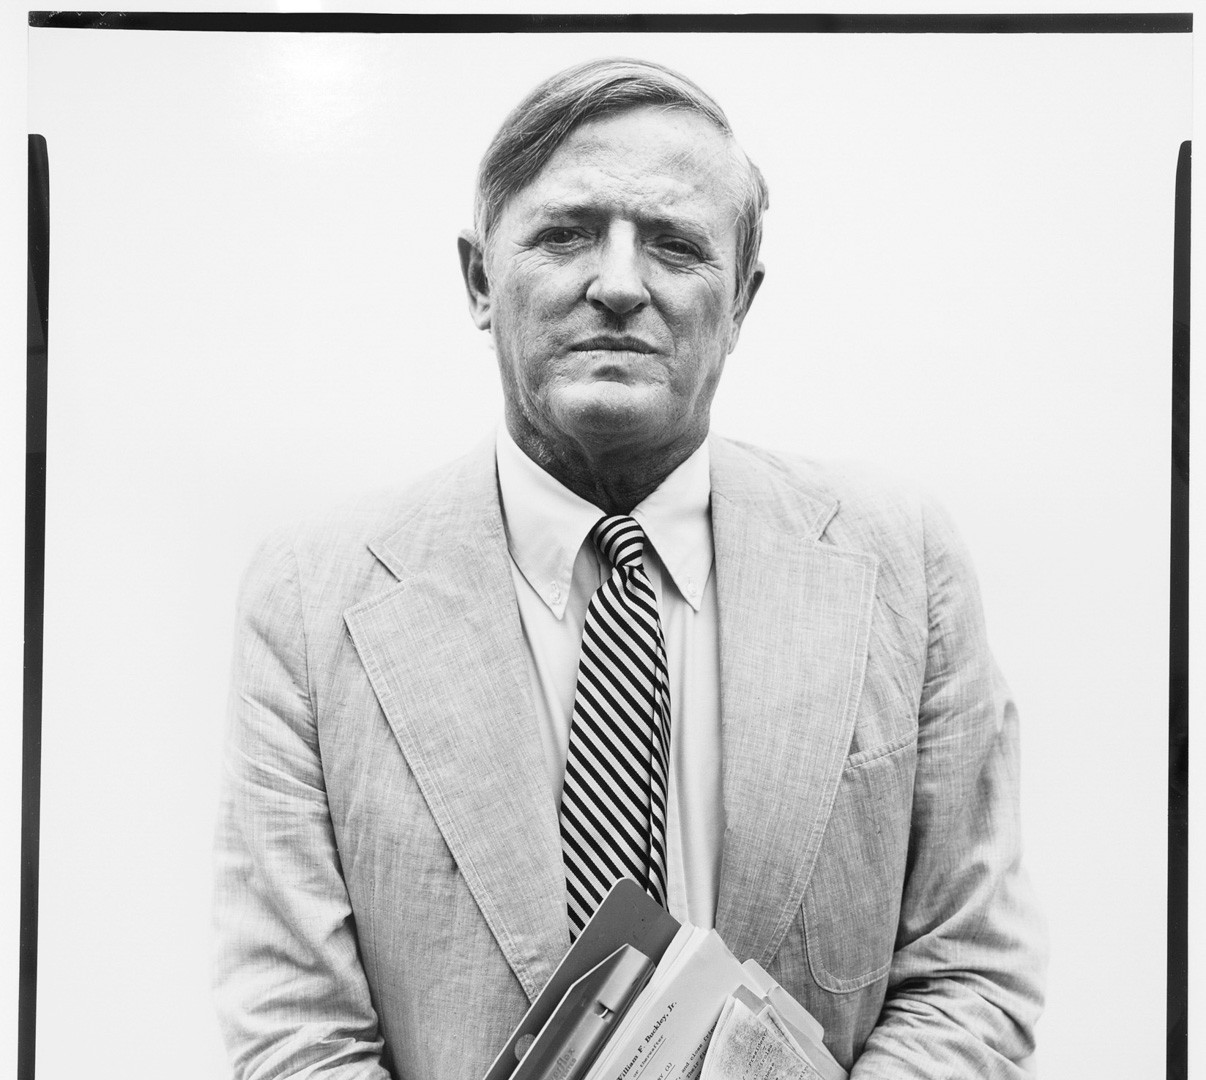 Richard Avedon, William F. Buckley, Jr., columnist, New York City, July 22, 1975